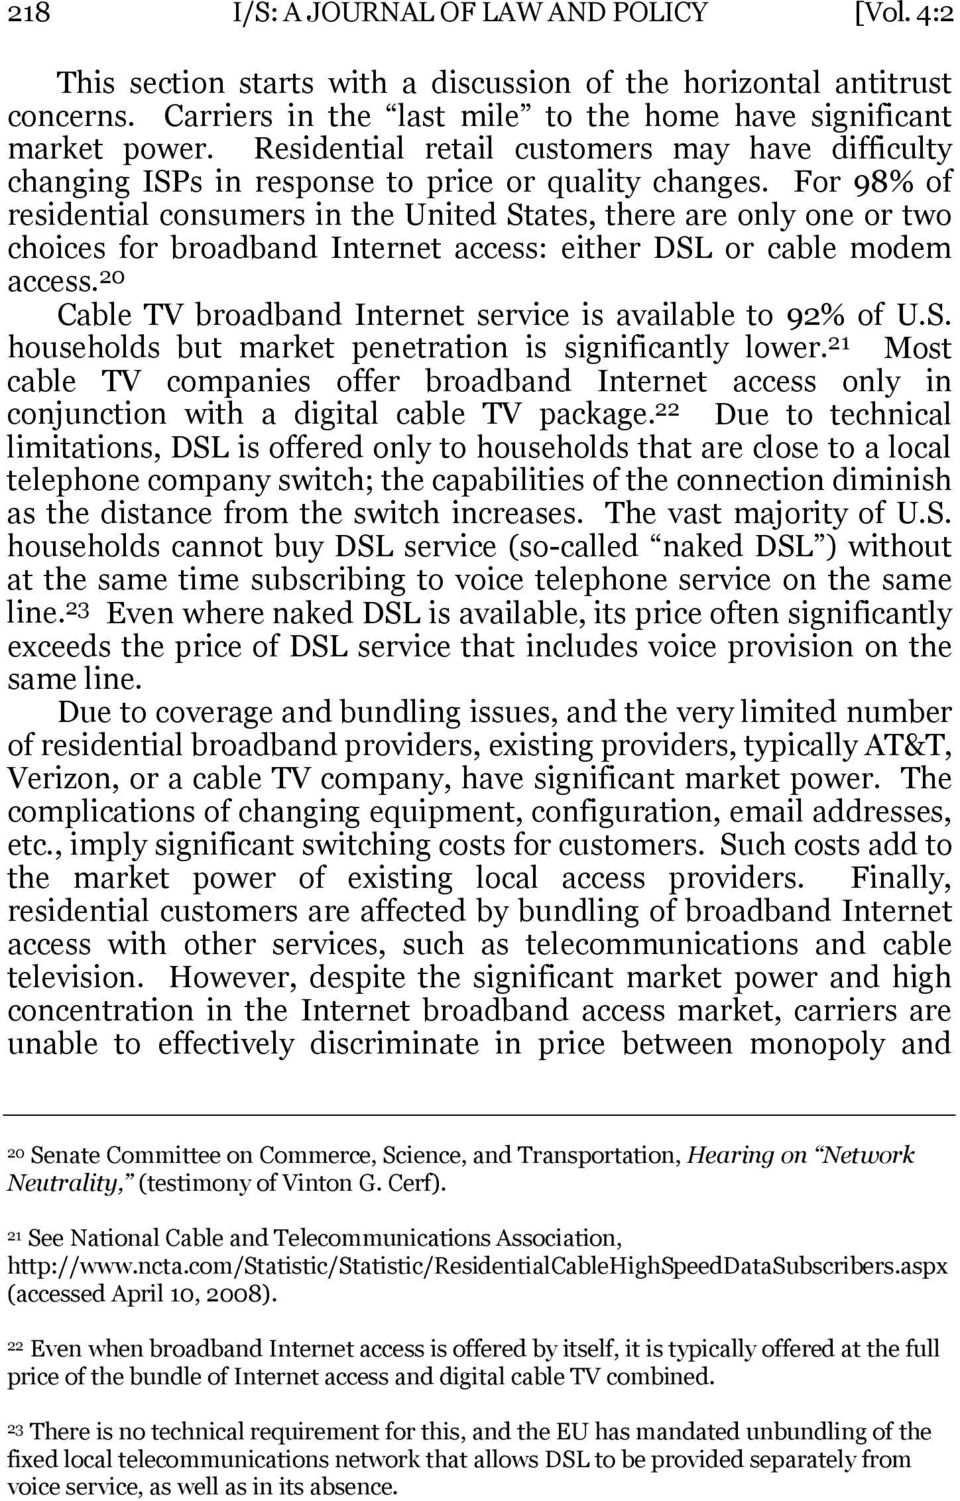 For 98% of residential consumers in the United States, there are only one or two choices for broadband Internet access: either DSL or cable modem access.